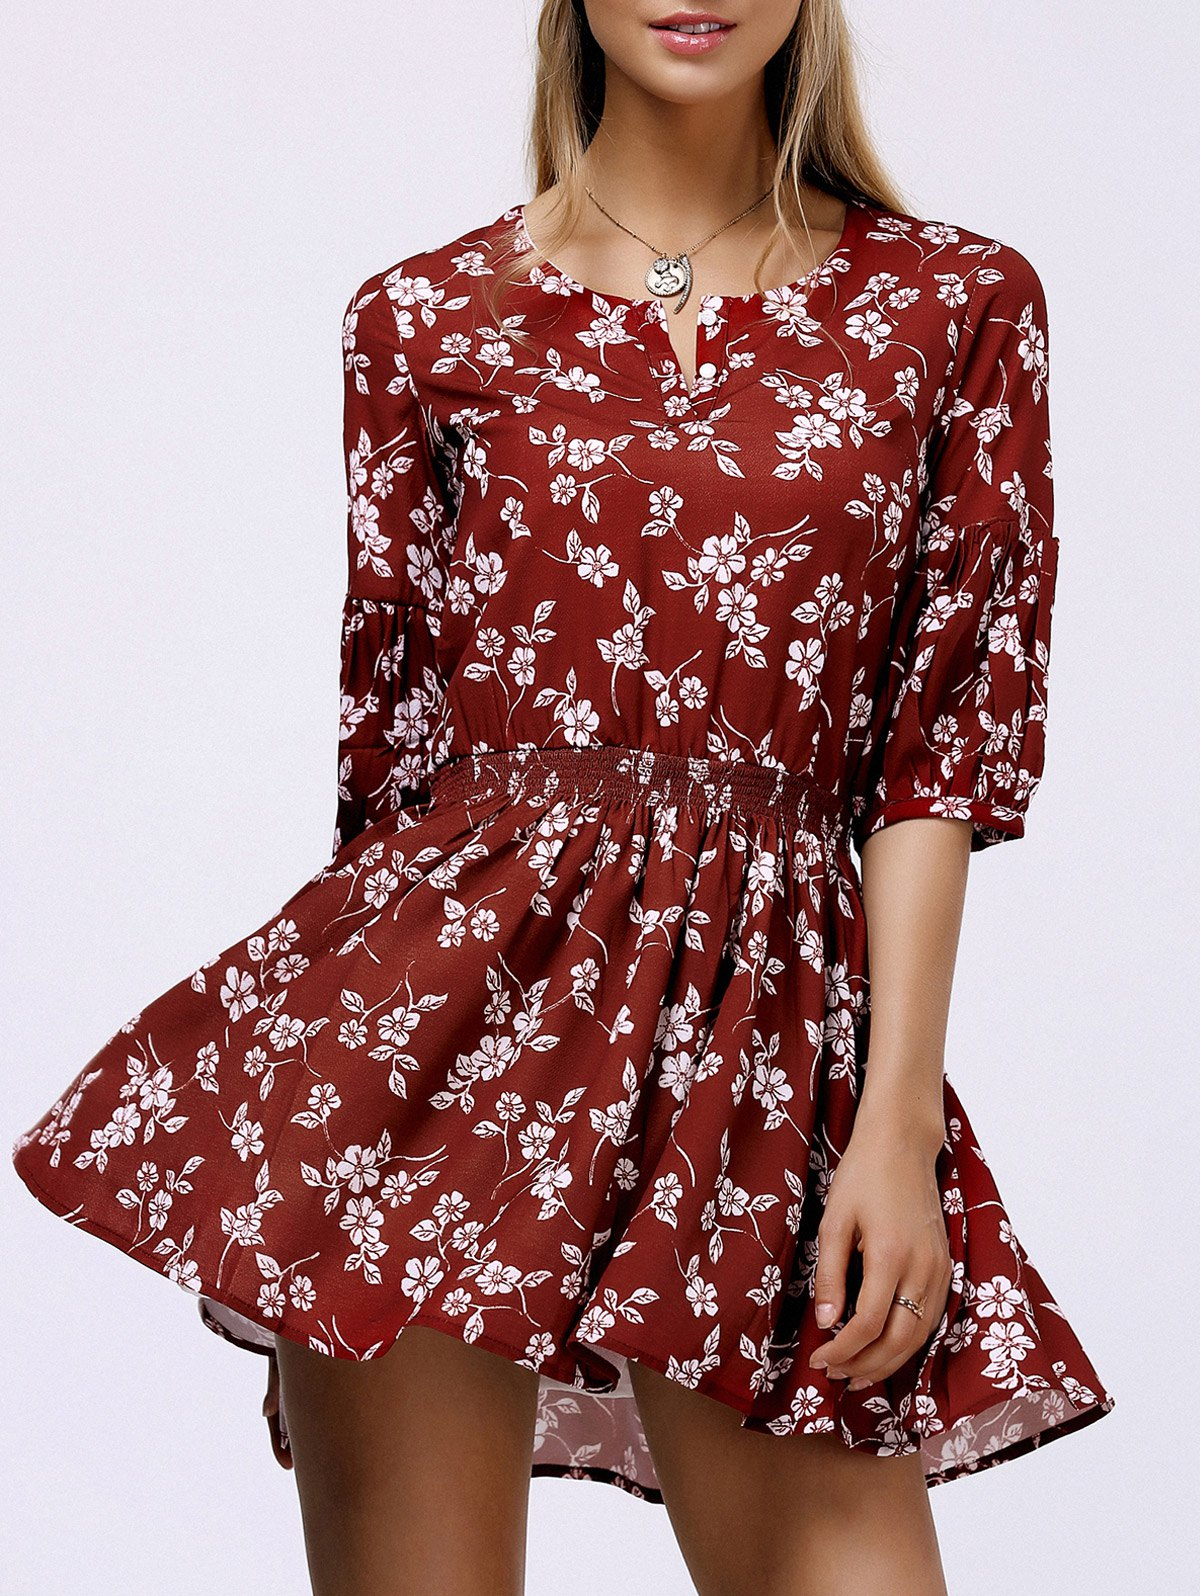 Slimming Floral Print Flowy Dress - DEEP RED L